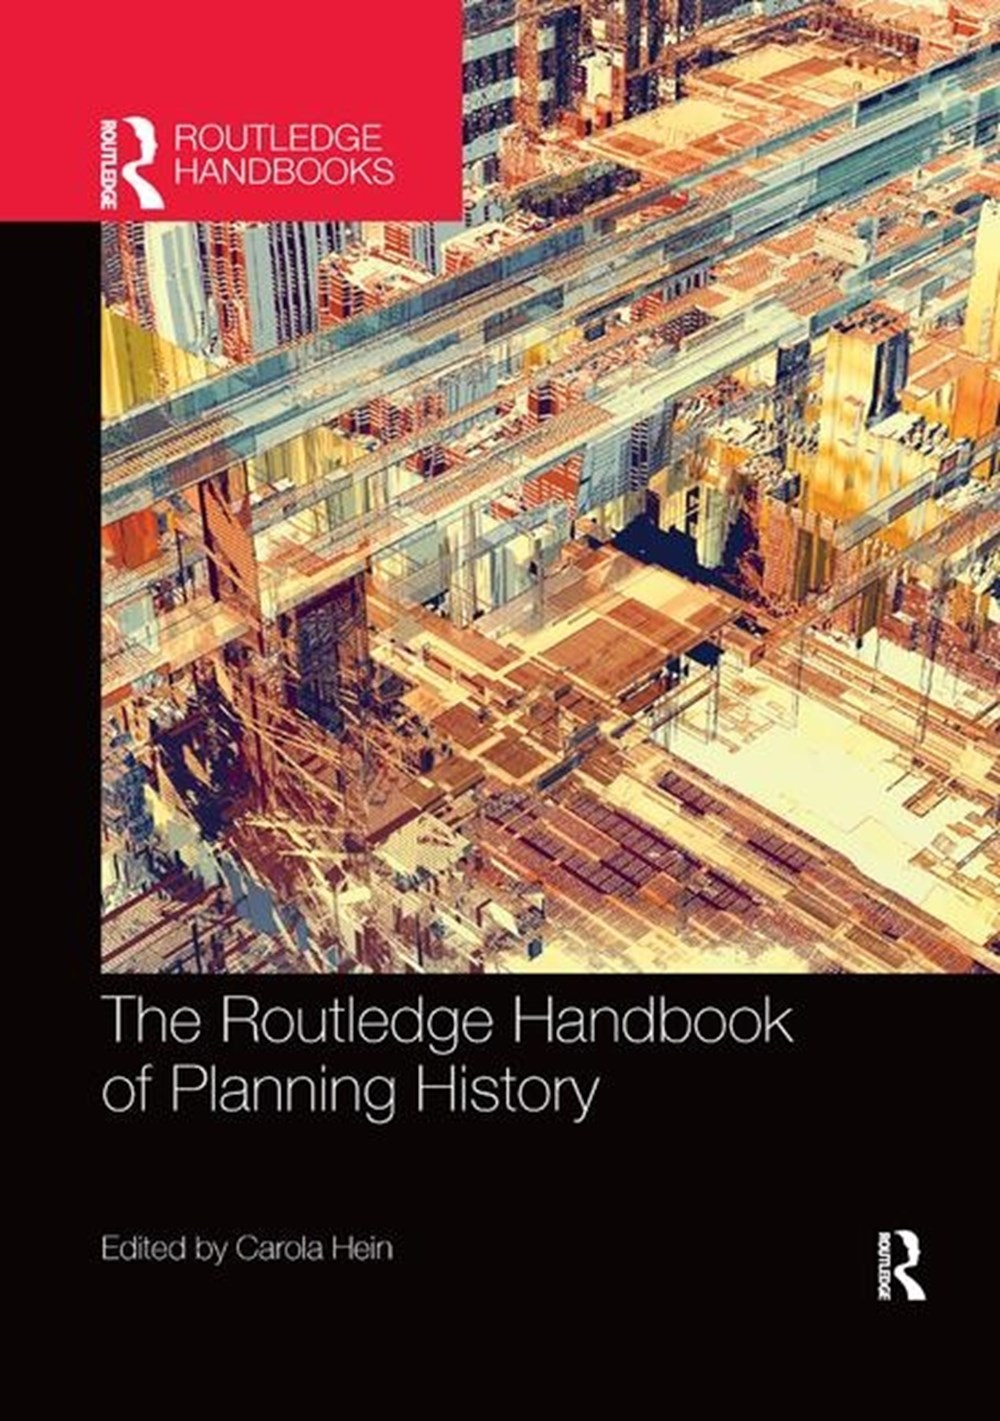 Routledge Handbook of Planning History